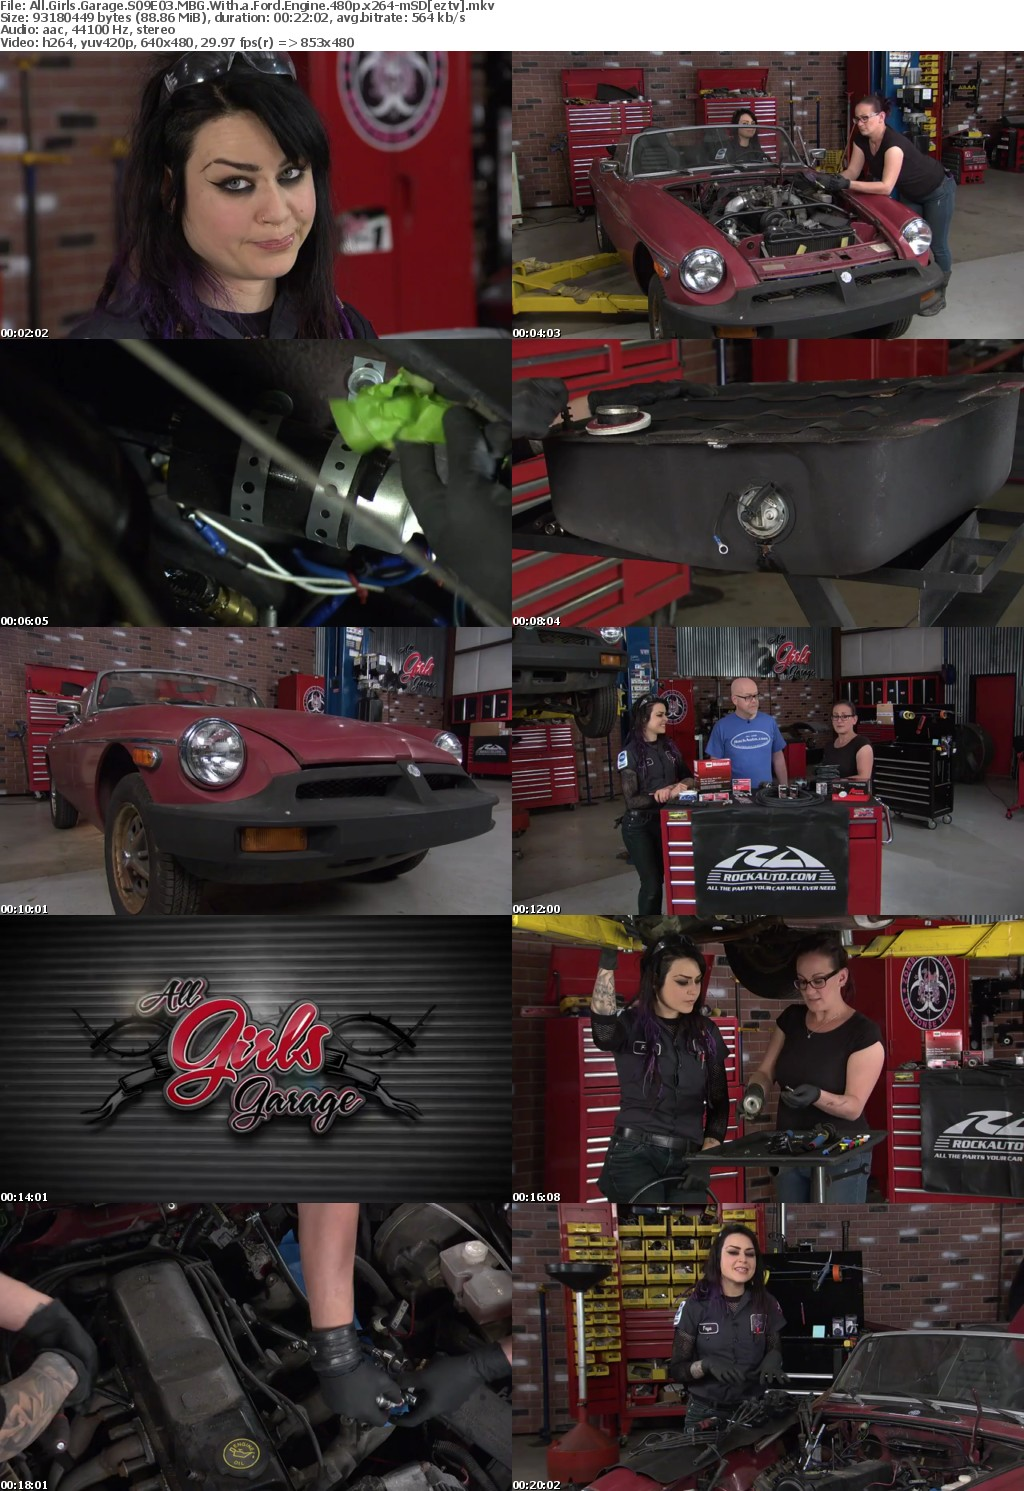 All Girls Garage S09E03 MBG With a Ford Engine 480p x264-mSD